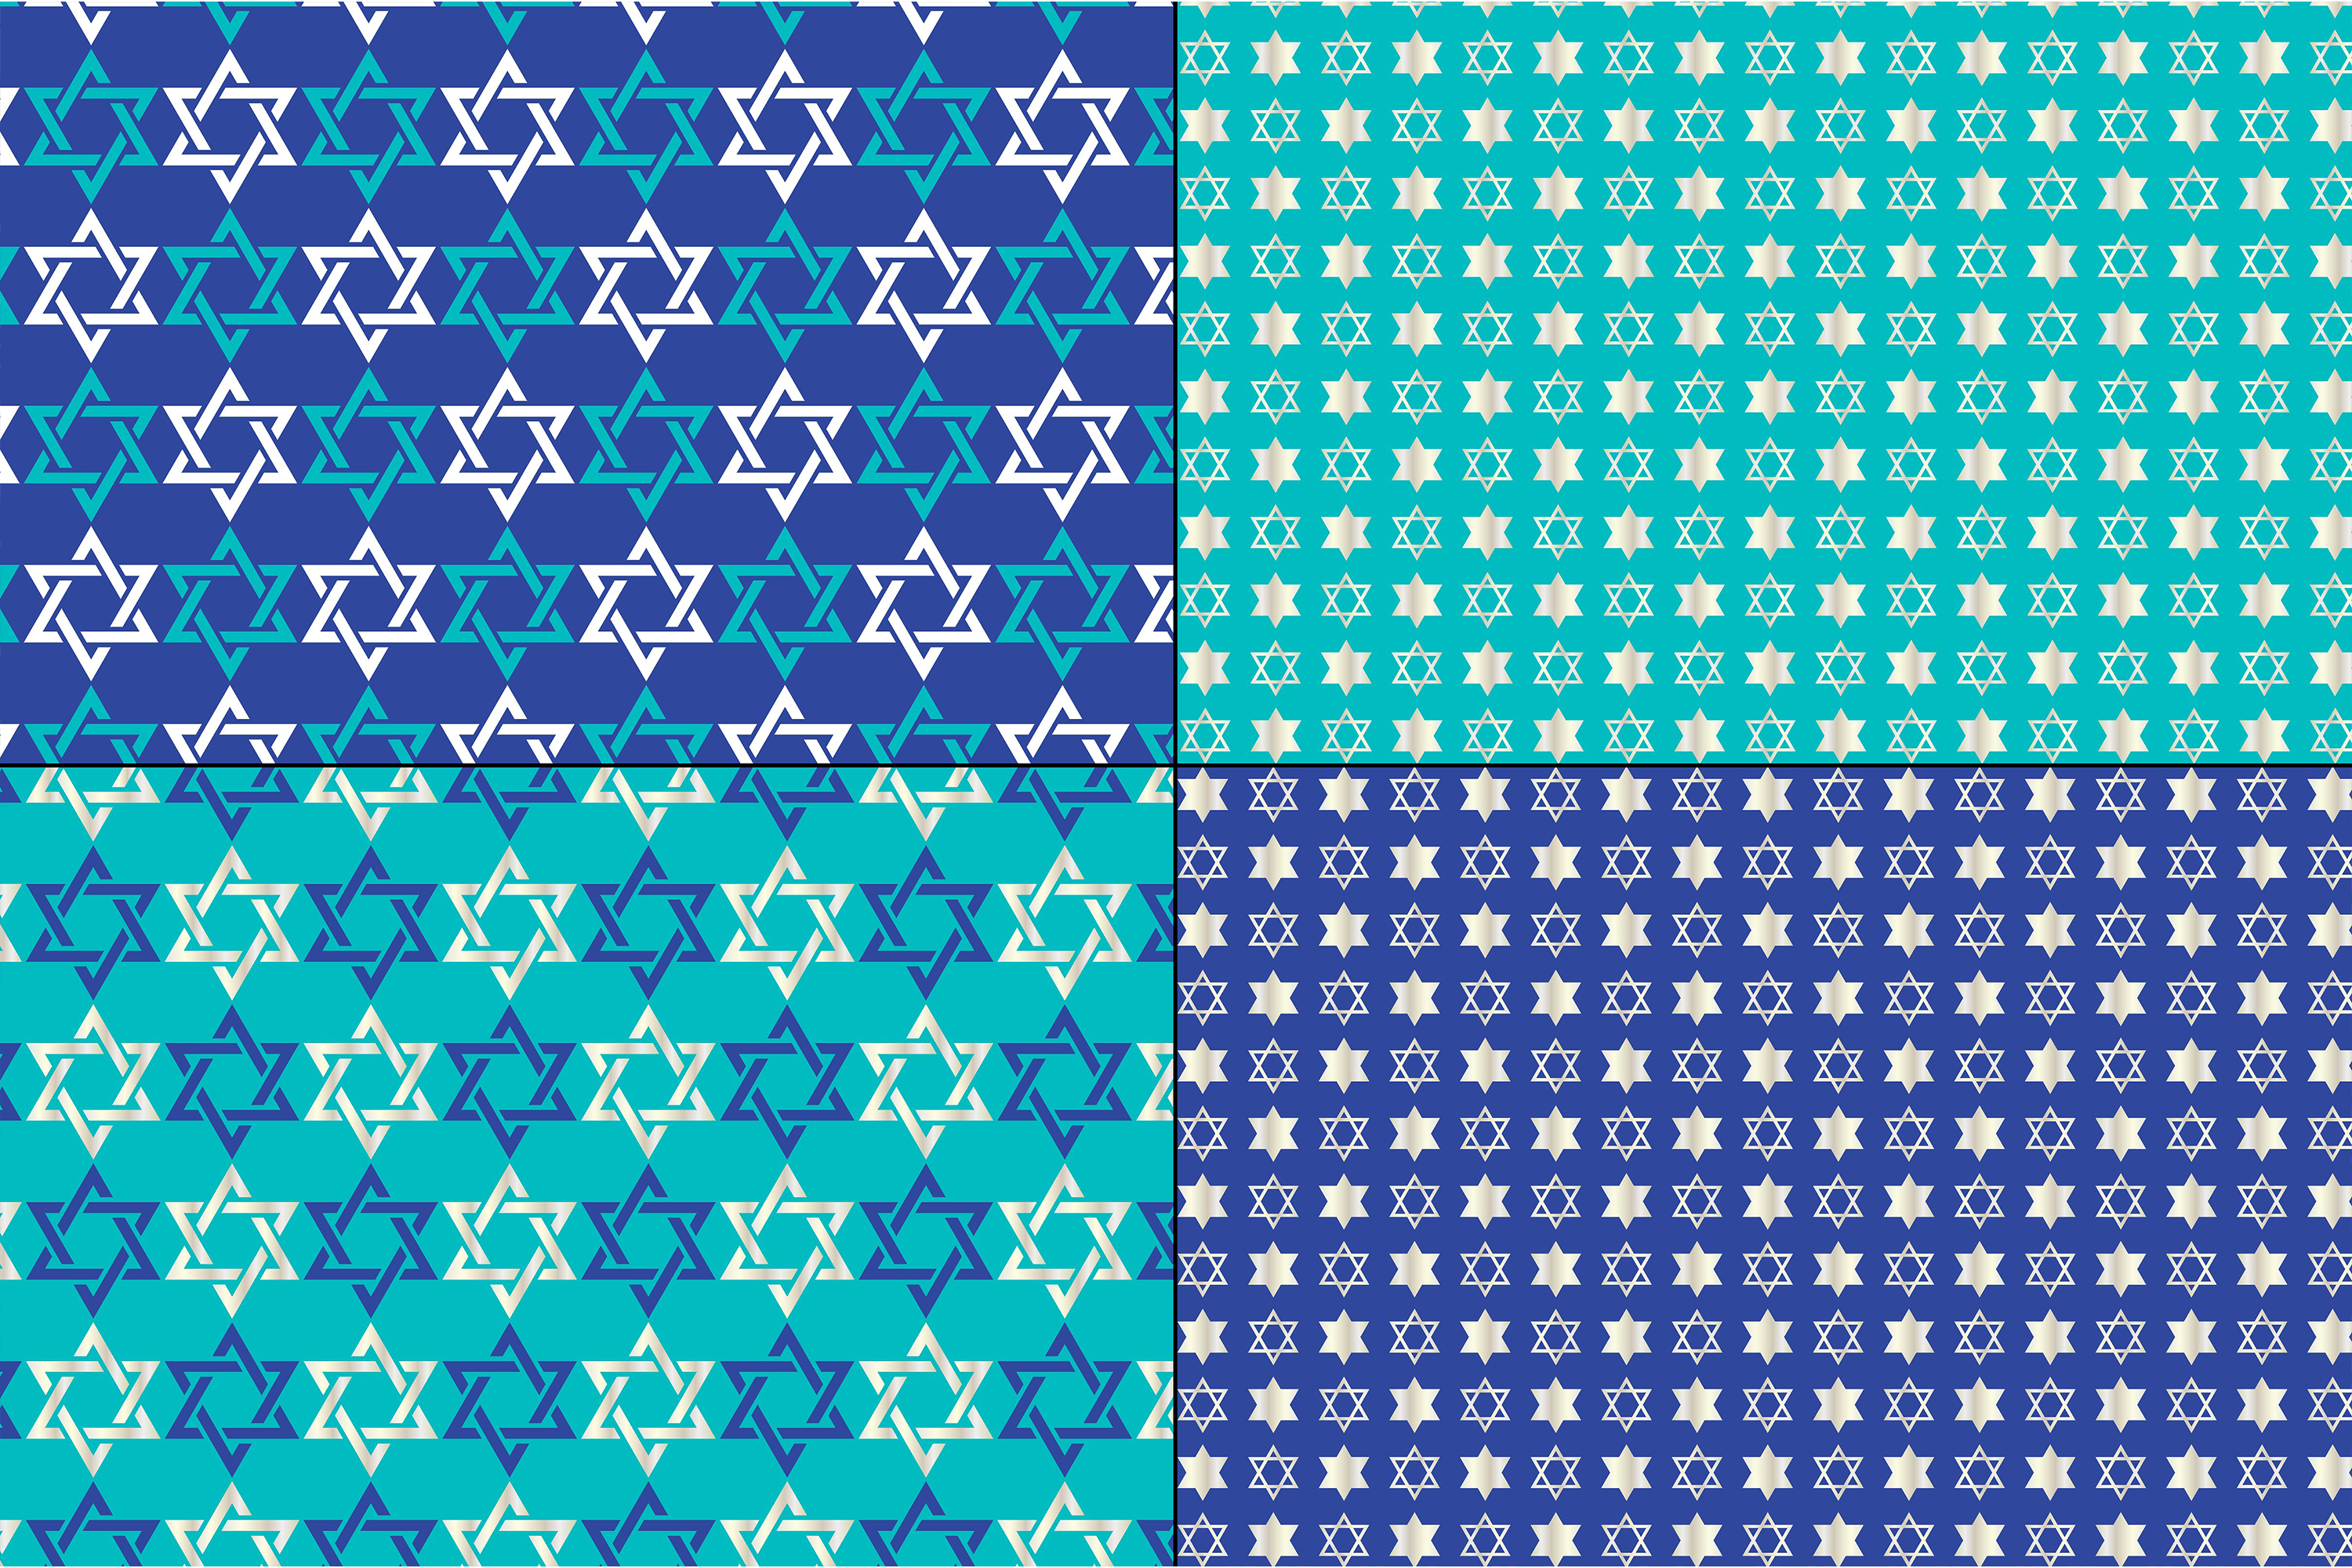 Silver Blue Chanukah Patterns example image 3